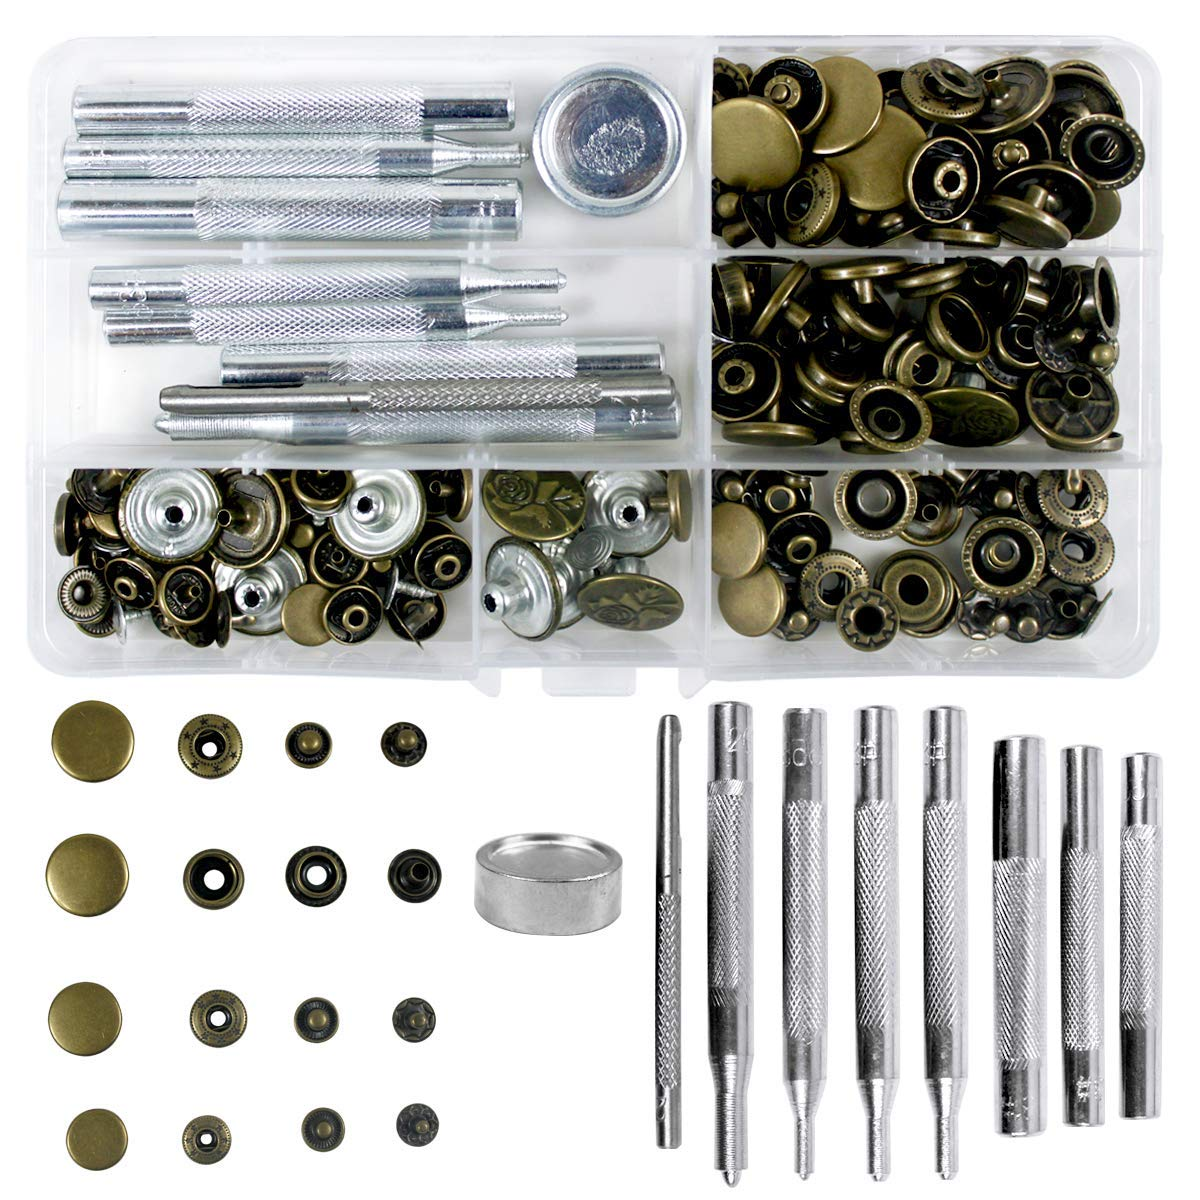 50 Set 4 Sizes Leather Rivets Single Cap Rivet Tubular Metal Studs With 9 Pieces Fixing Tool For Diy Leather Craft, Rivets Rep